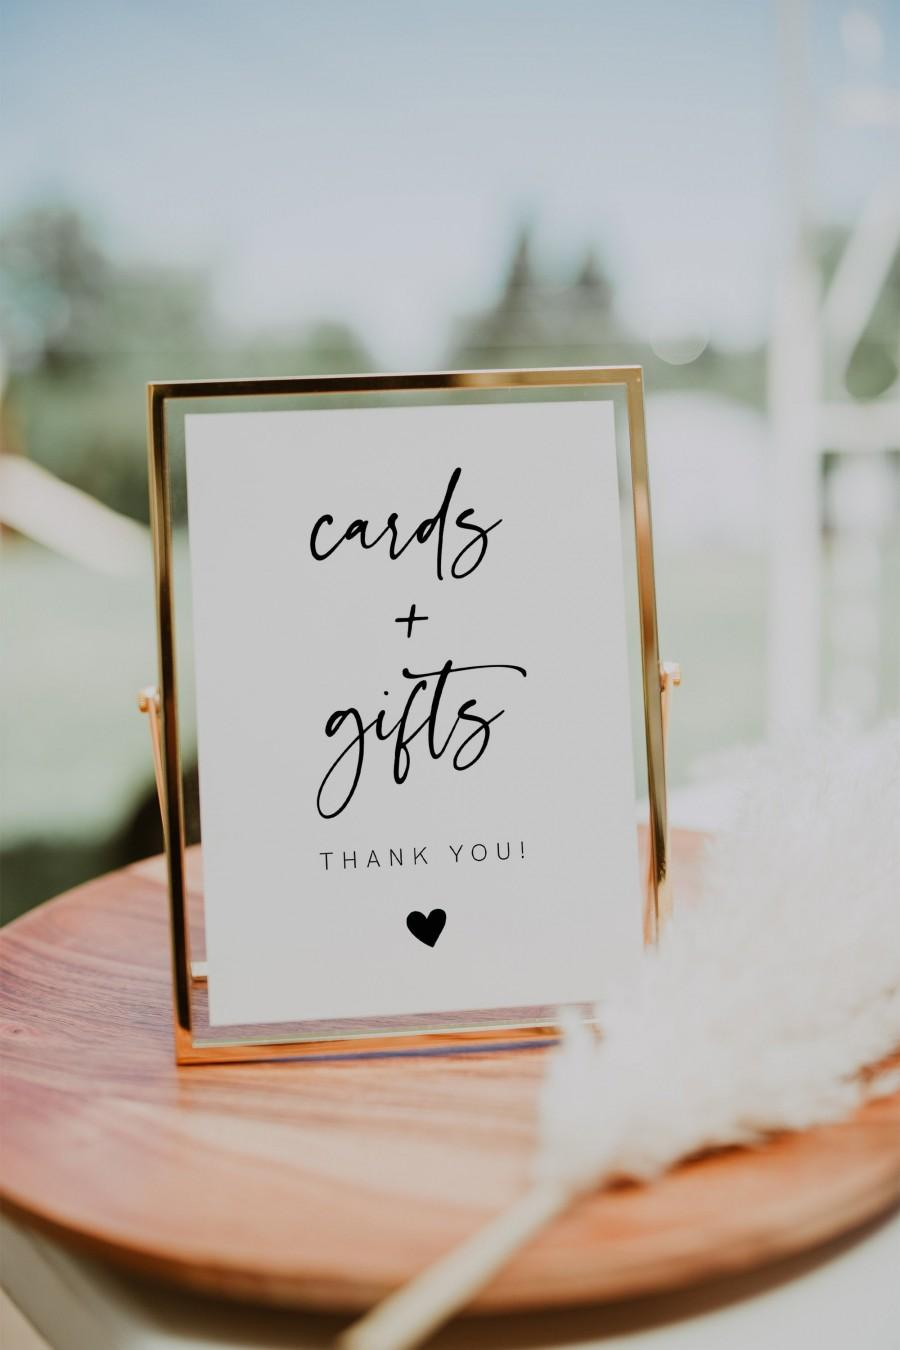 Wedding - Cards and Gifts Sign Printable, Modern Minimalist Wedding Sign, Baby Shower Sign, Bridal Shower Gift Sign, Retirement Party Instant, 003